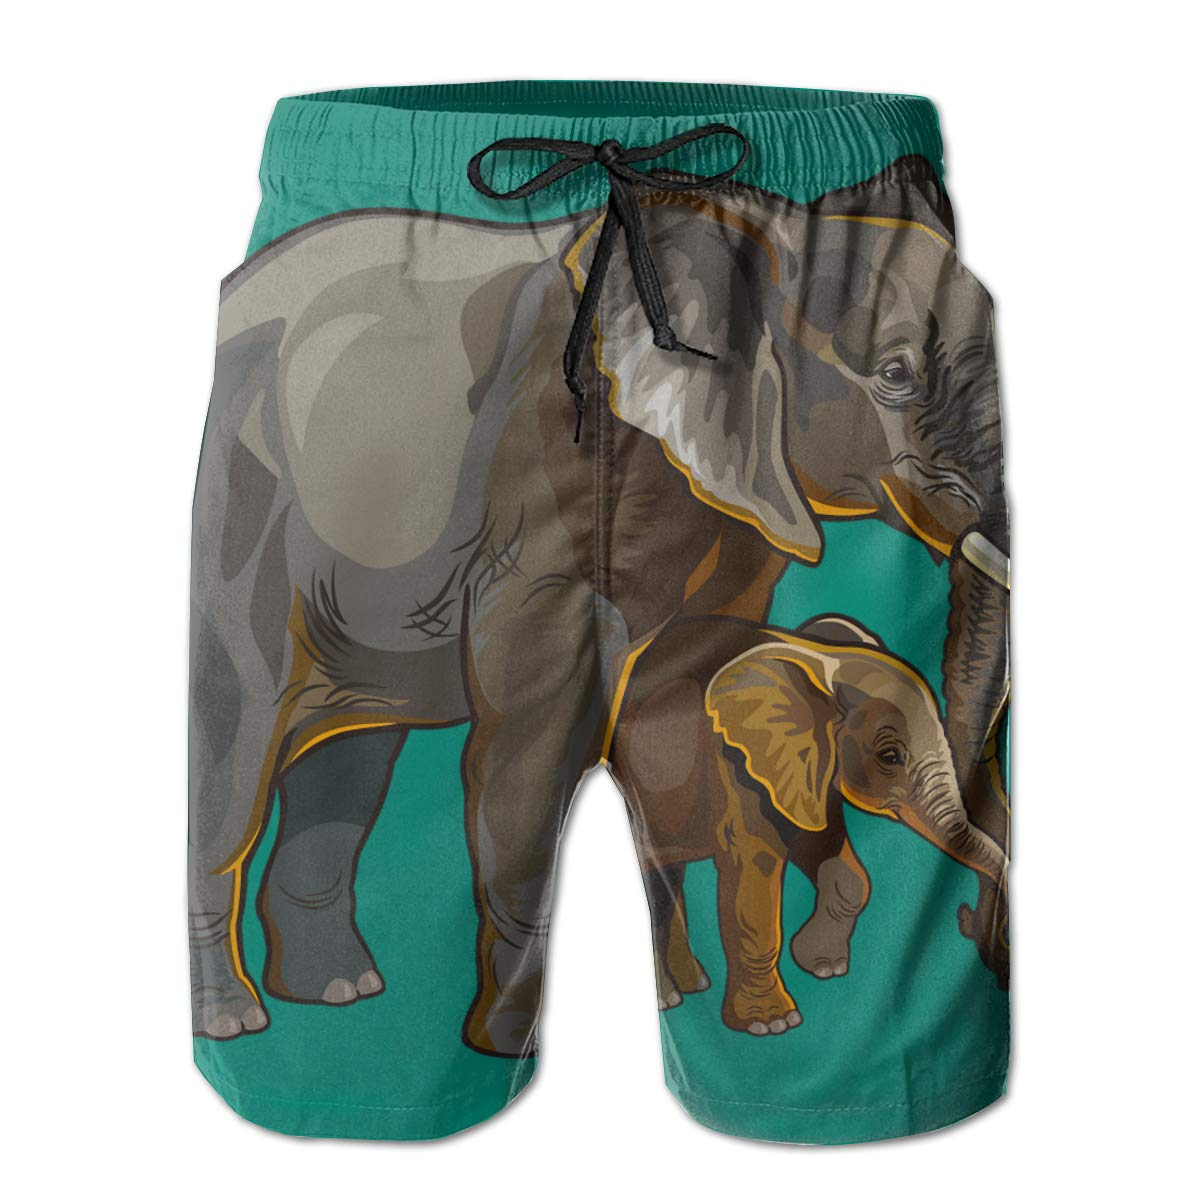 Suitable for Surfing Elephant Mens Swimming Pants Redeast Beach Shorts Swimming and Other Marine Sports